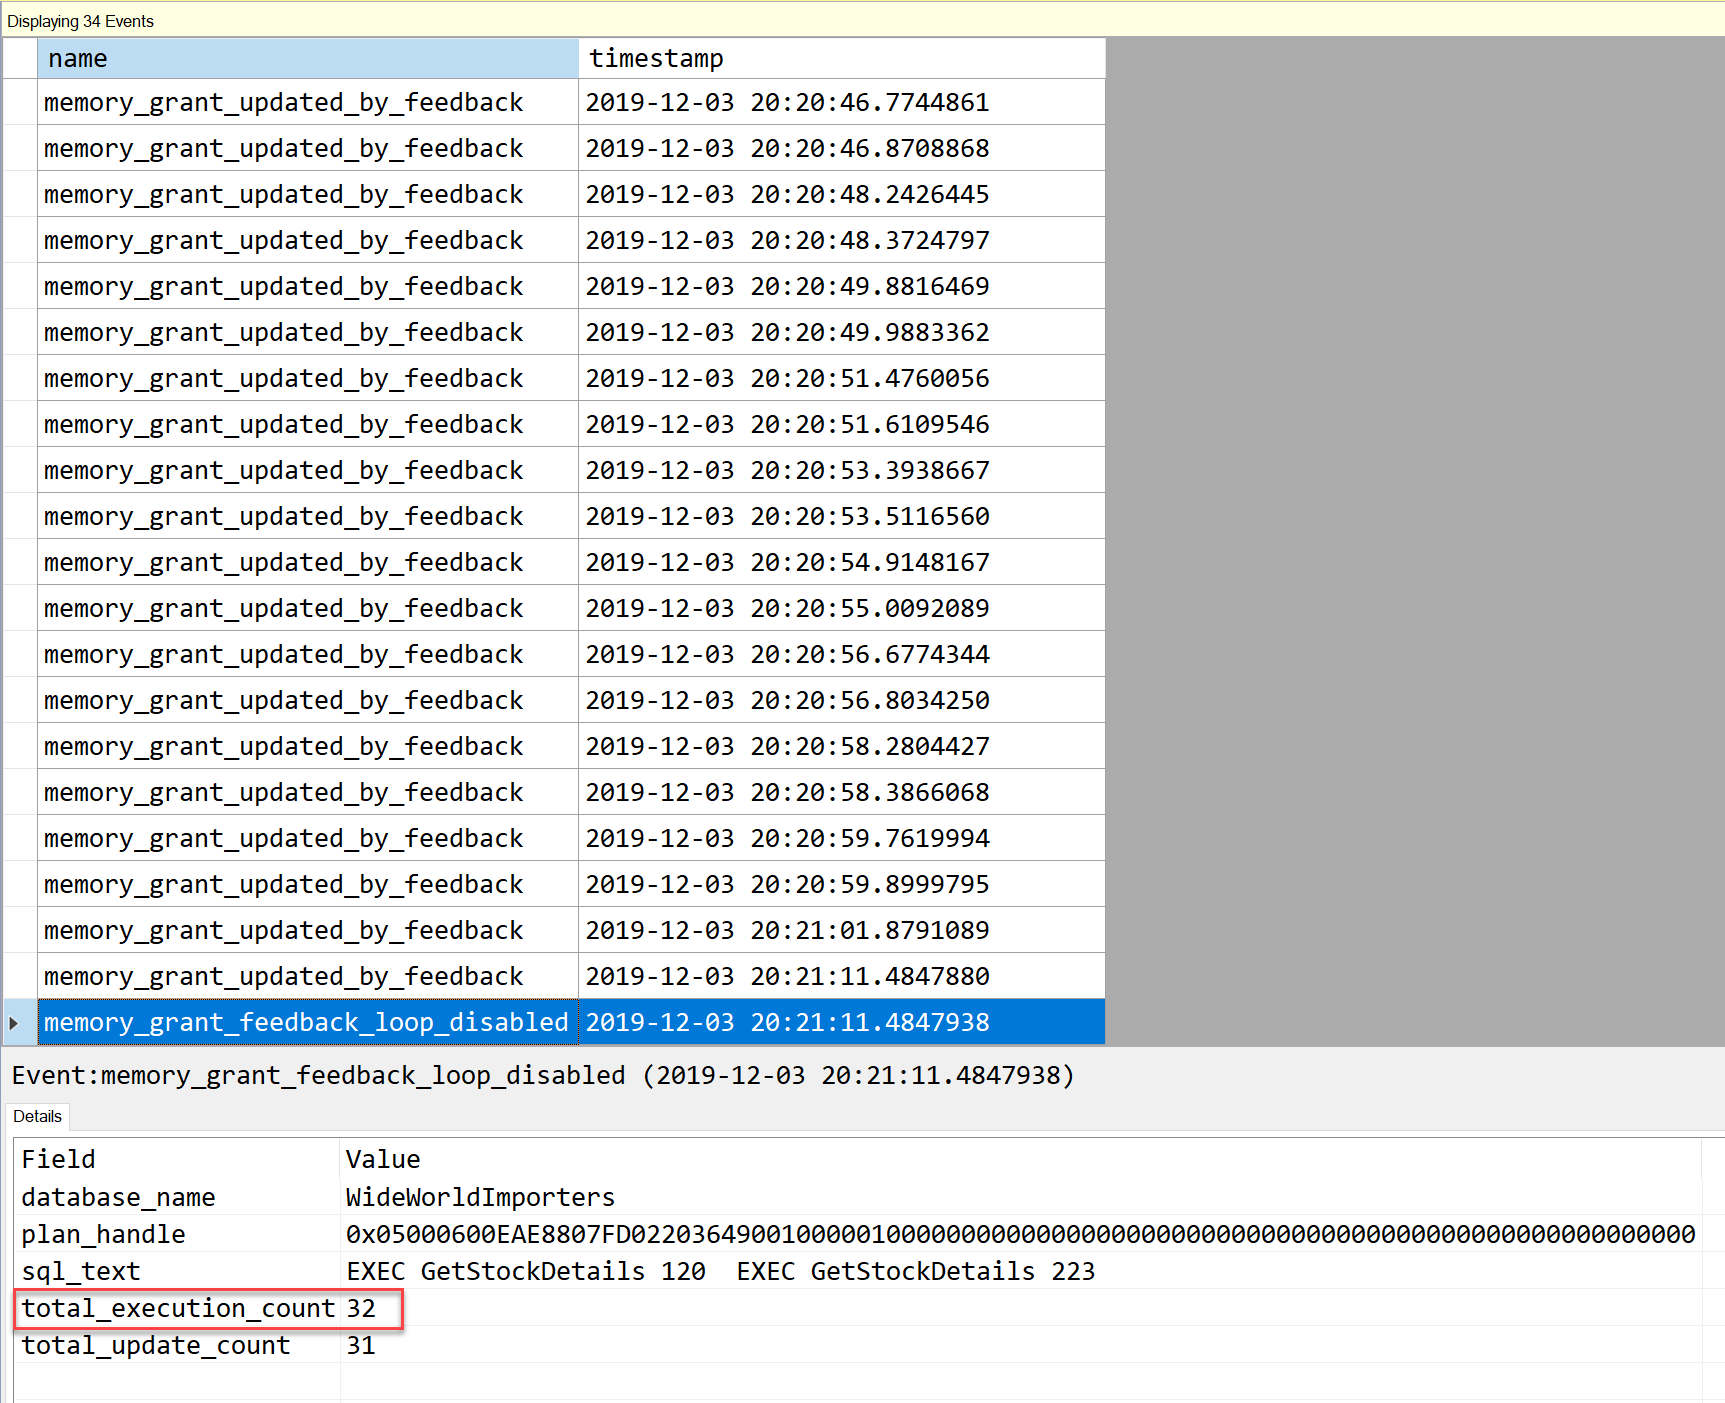 SQL SERVER - Extended Event to Capture Memory Grant Feedback capturememory13